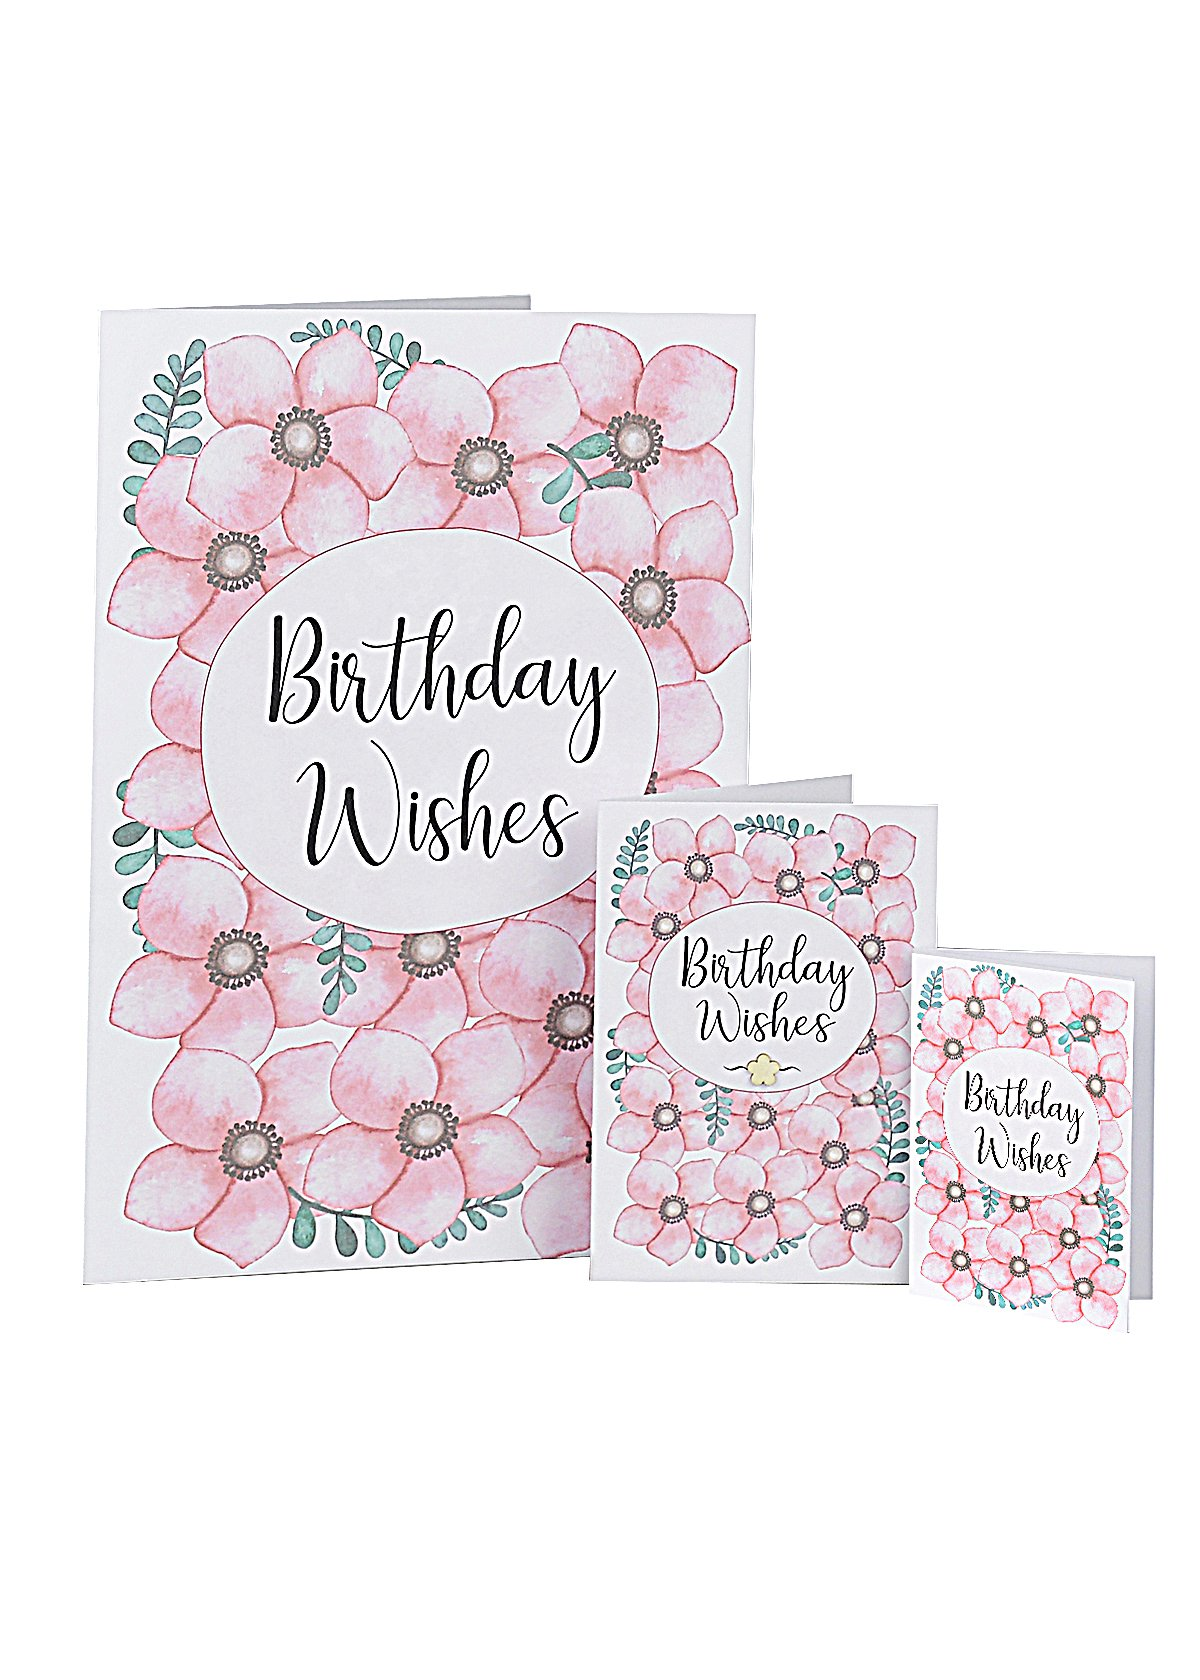 LILS CARDS AUSTRALIAN GREETING WHOLESALER